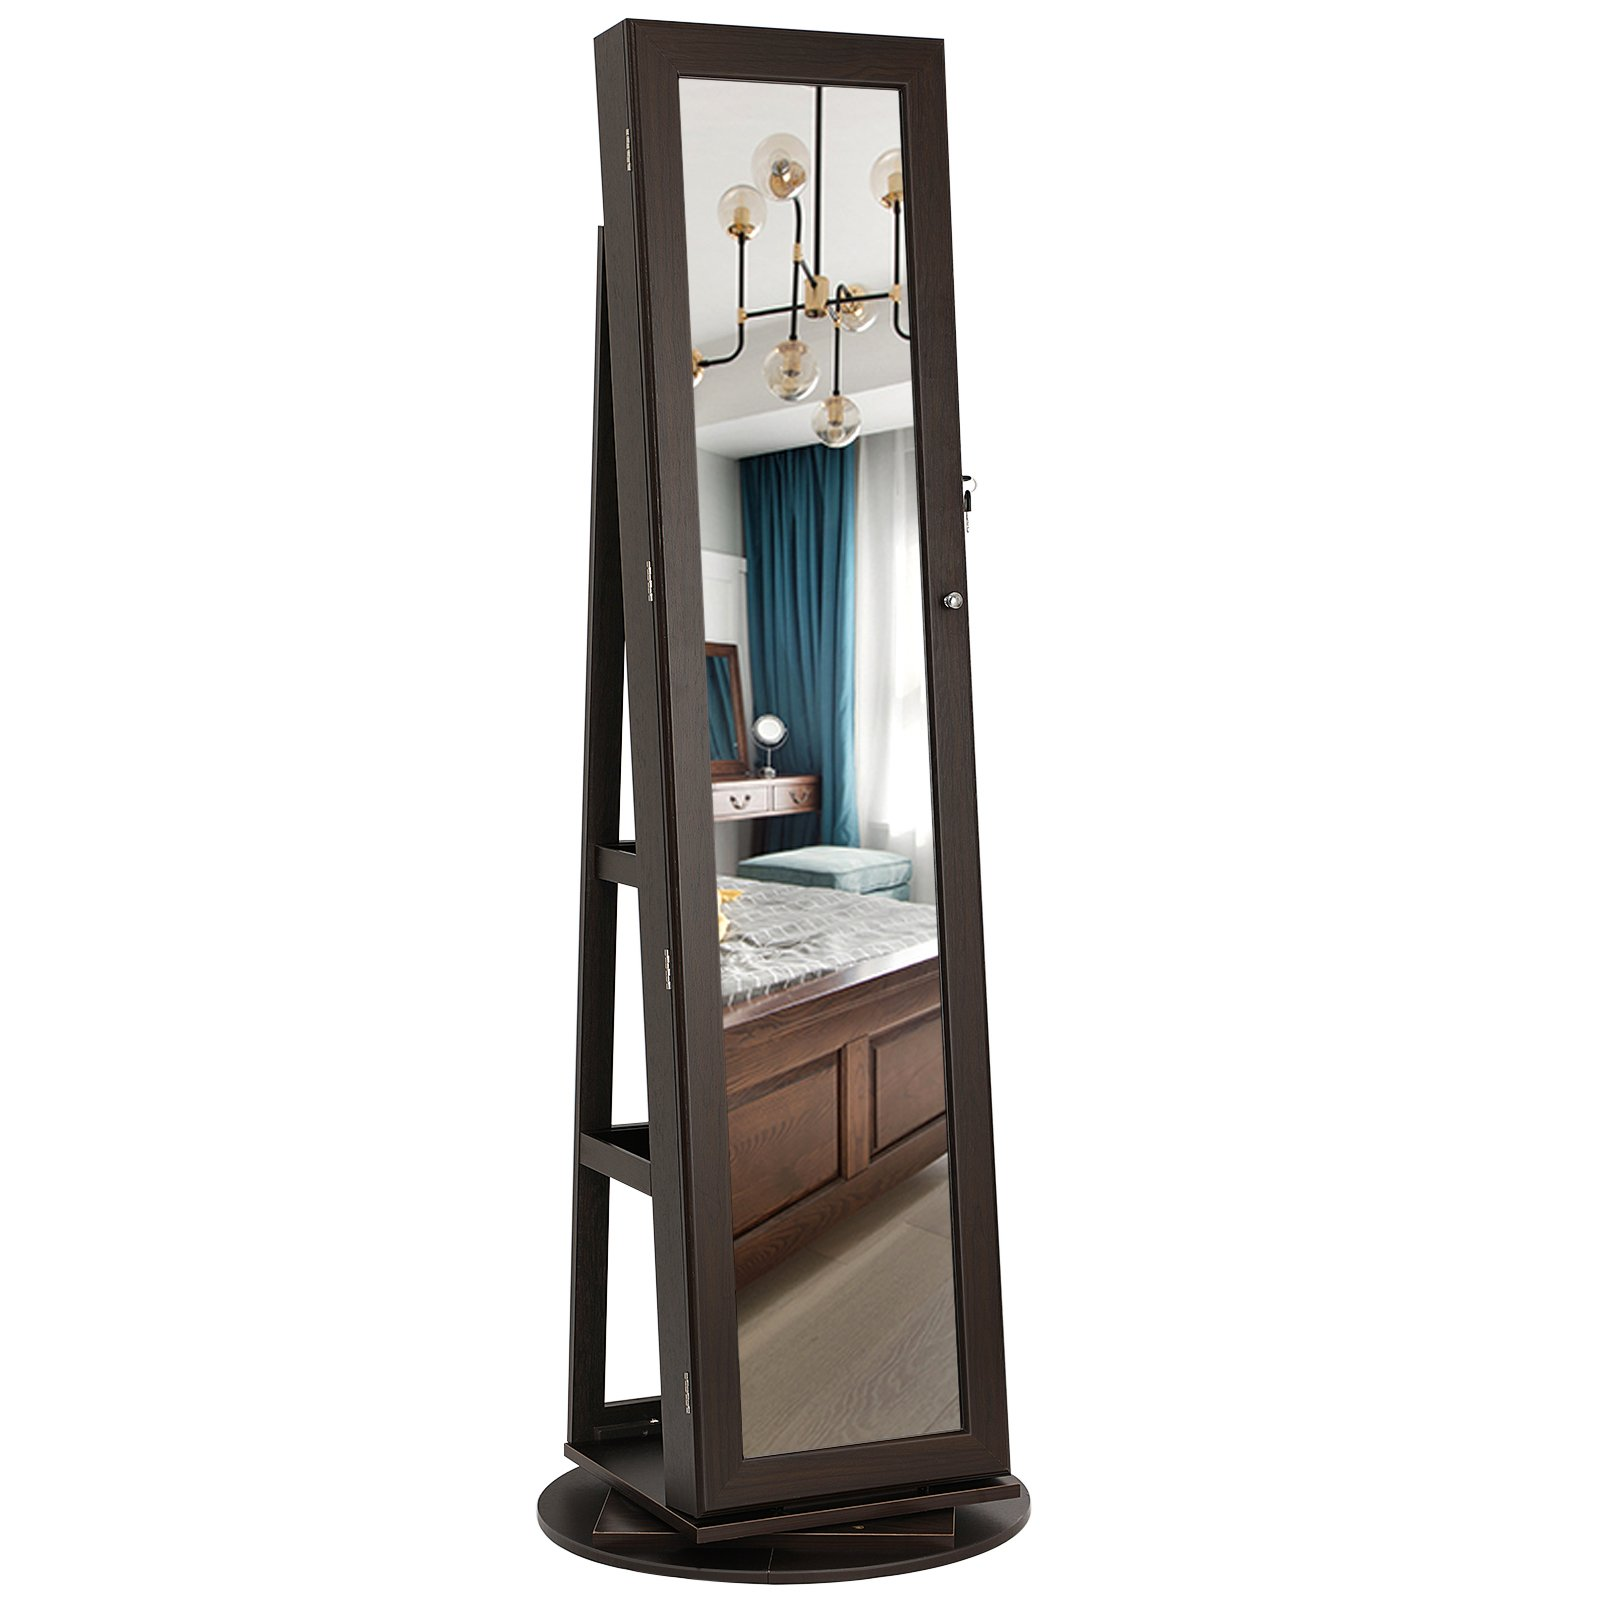 SONGMICS 360° Rotatable Jewelry Organizer Cabinet Armoire, Lockable, Higher Mirror, Brown UJJC62BR by SONGMICS